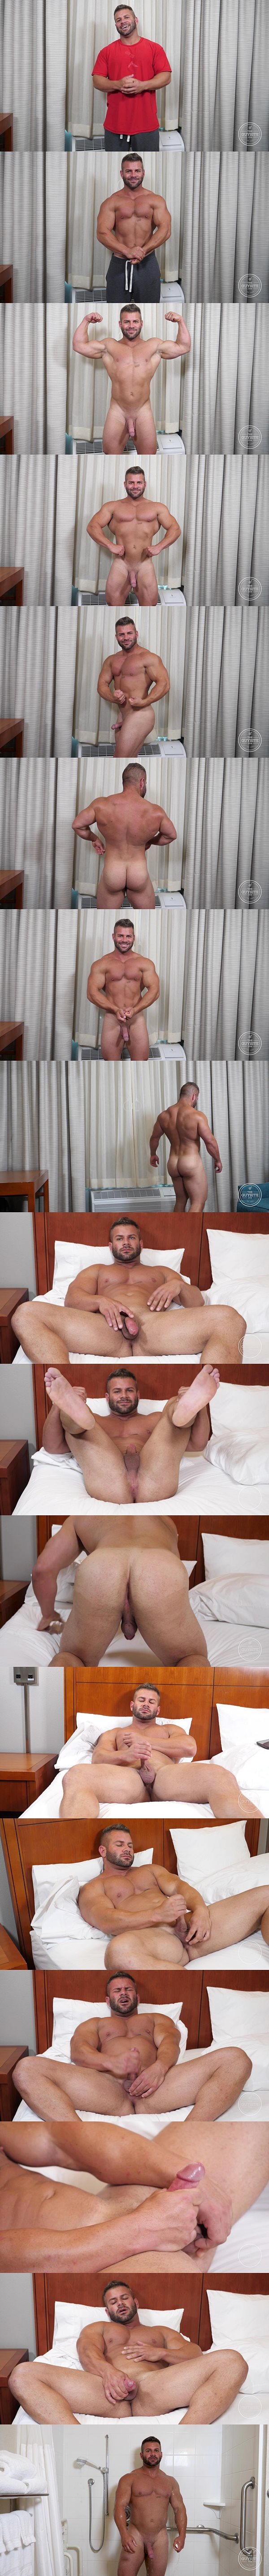 Hot macho beefcake Danny (aka Mason Max) shows off naked muscular body before he jerks off in Big Ass Muscle Man at Theguysite